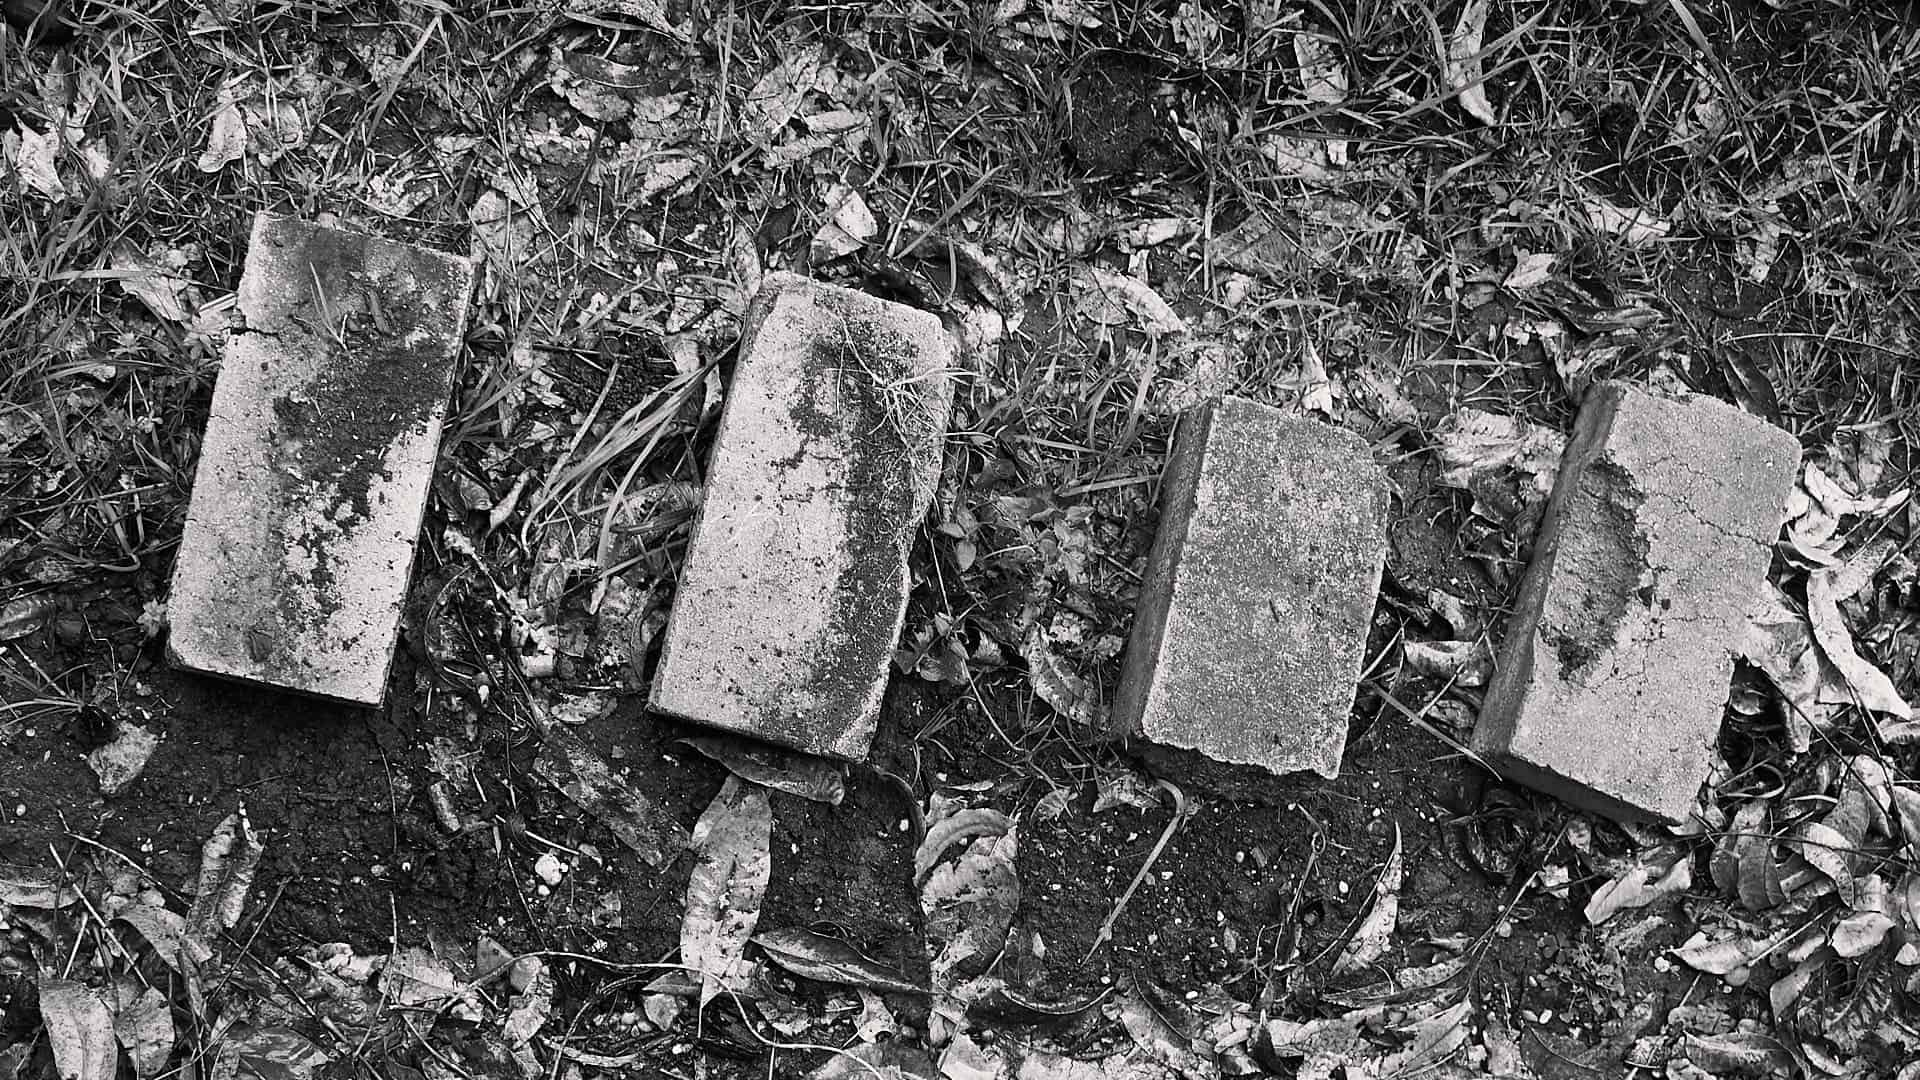 4 old bricks laying on the ground